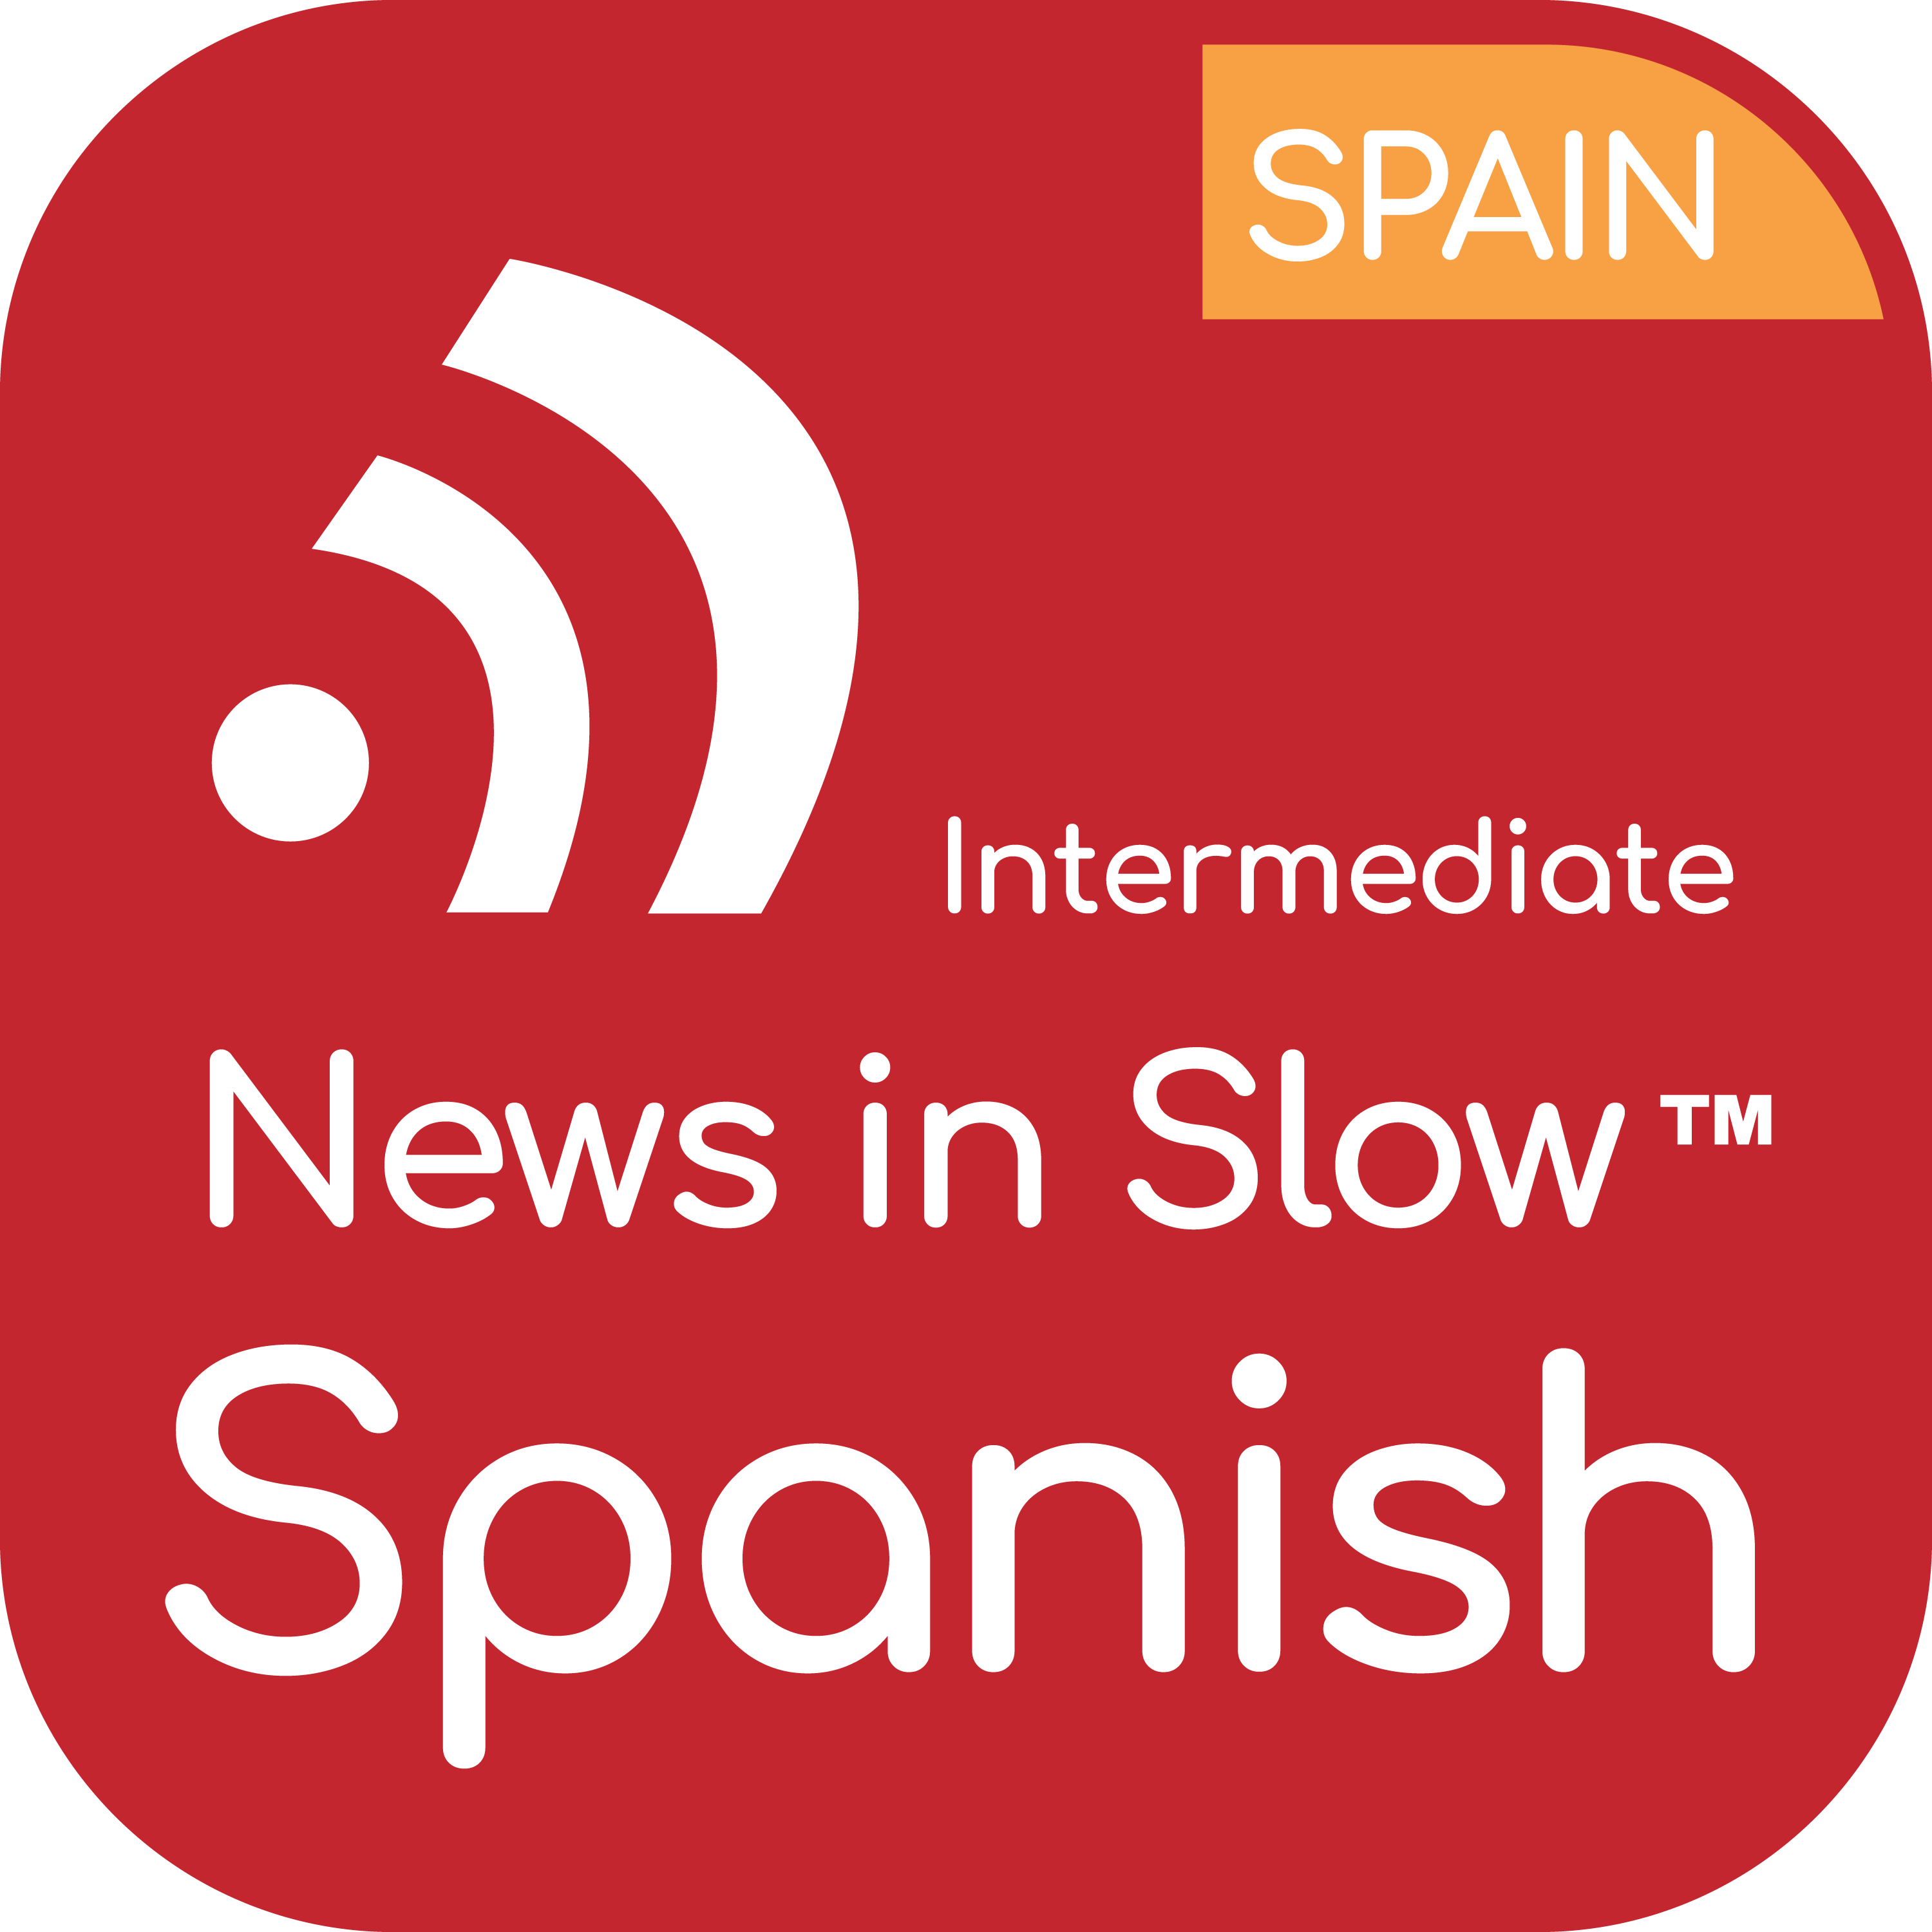 News in Slow Spanish - #563 - Learn Spanish through Current Events